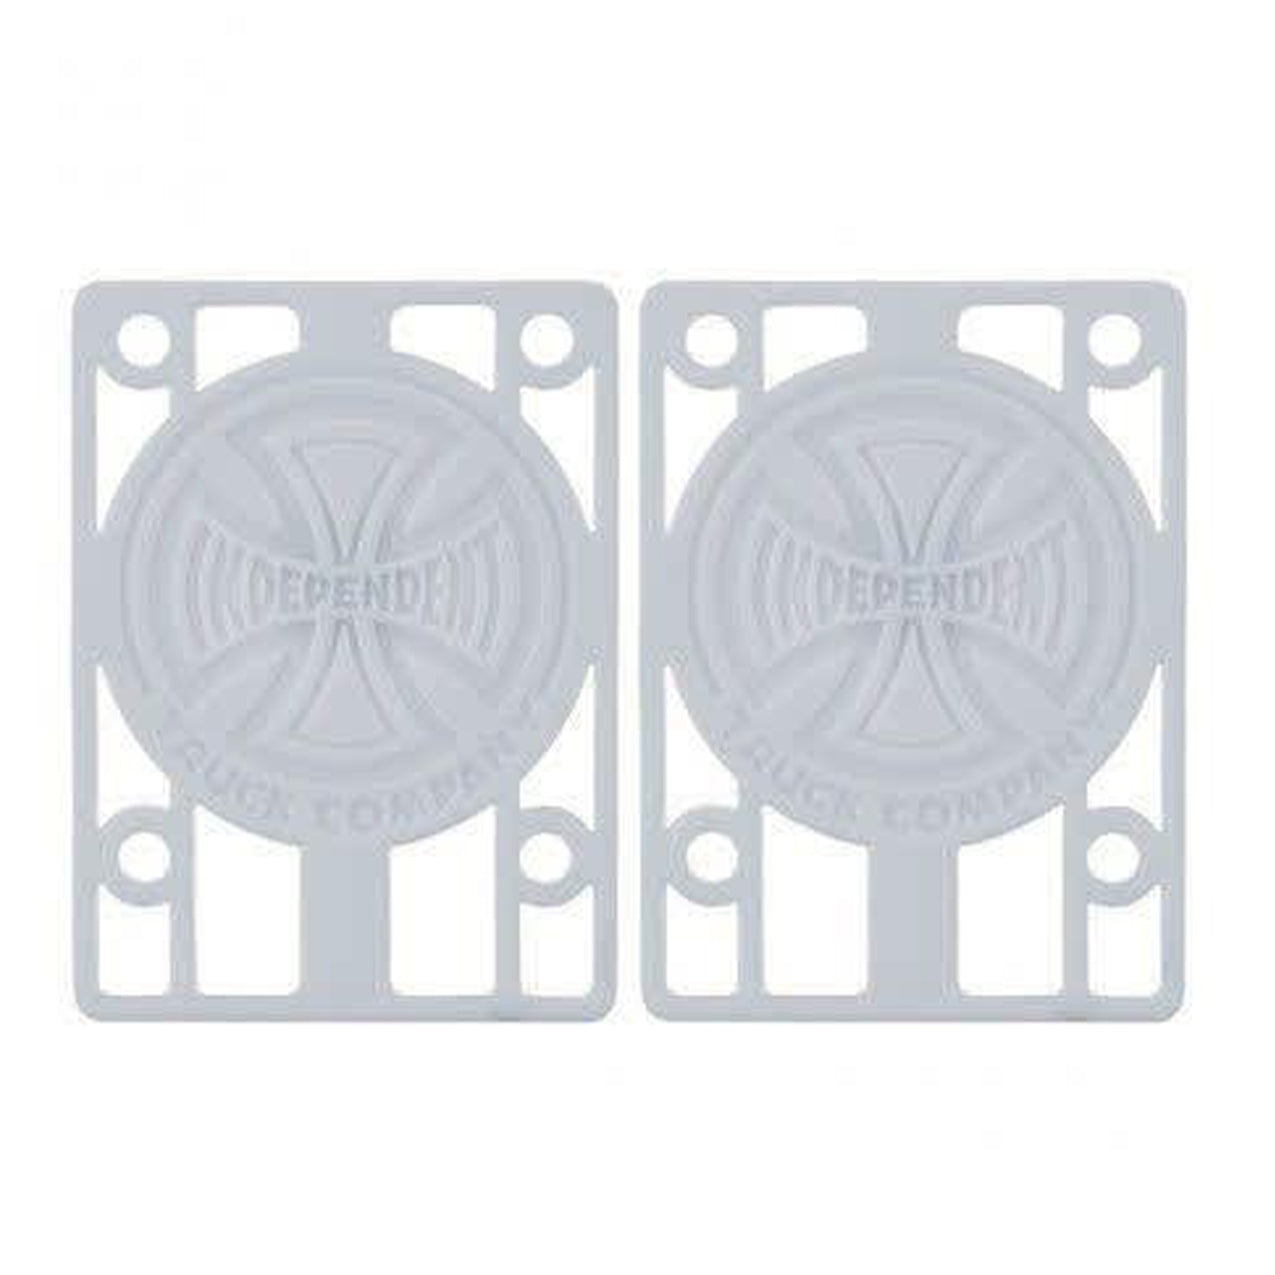 Indy Risers - White Riser Pads - 1/8